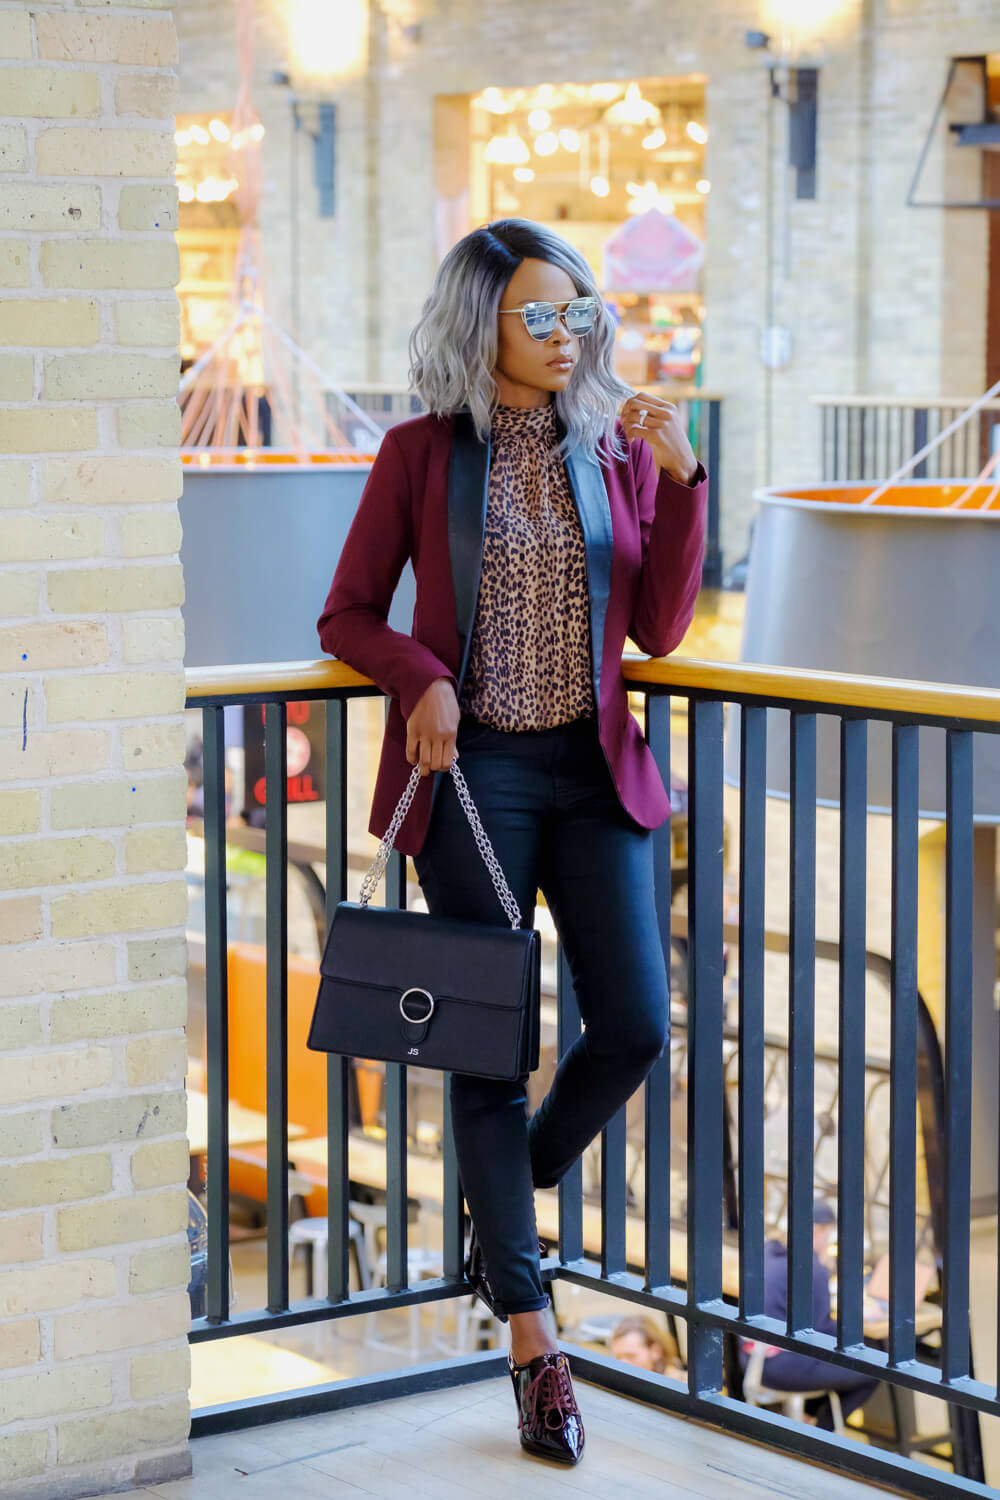 Animal Prints, What to wear, How to style a leopard print top, H&M leopard print top, fall fashion, Winnipeg blogger